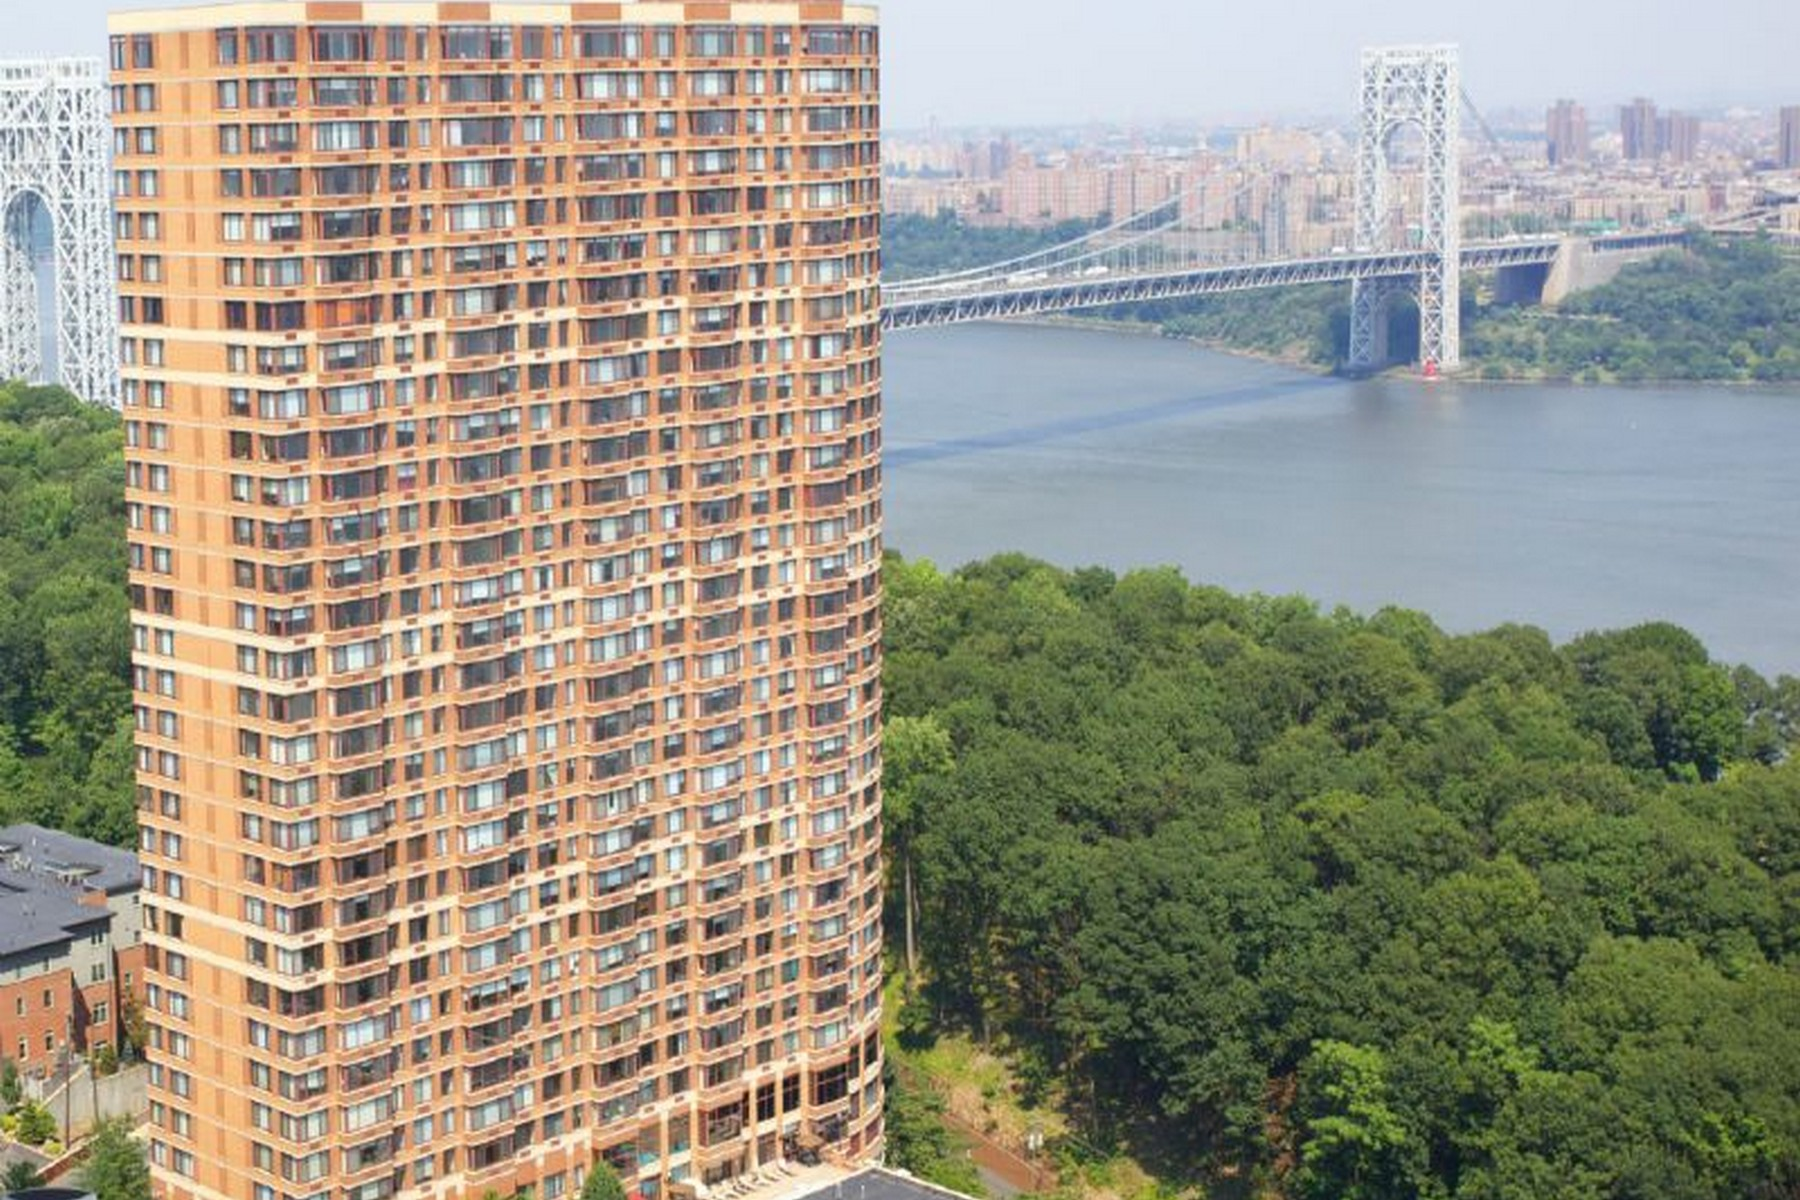 Condominium for Sale at Views,Views,Views!!! 100 Old Palisade Road, #4005, Fort Lee, New Jersey 07024 United States